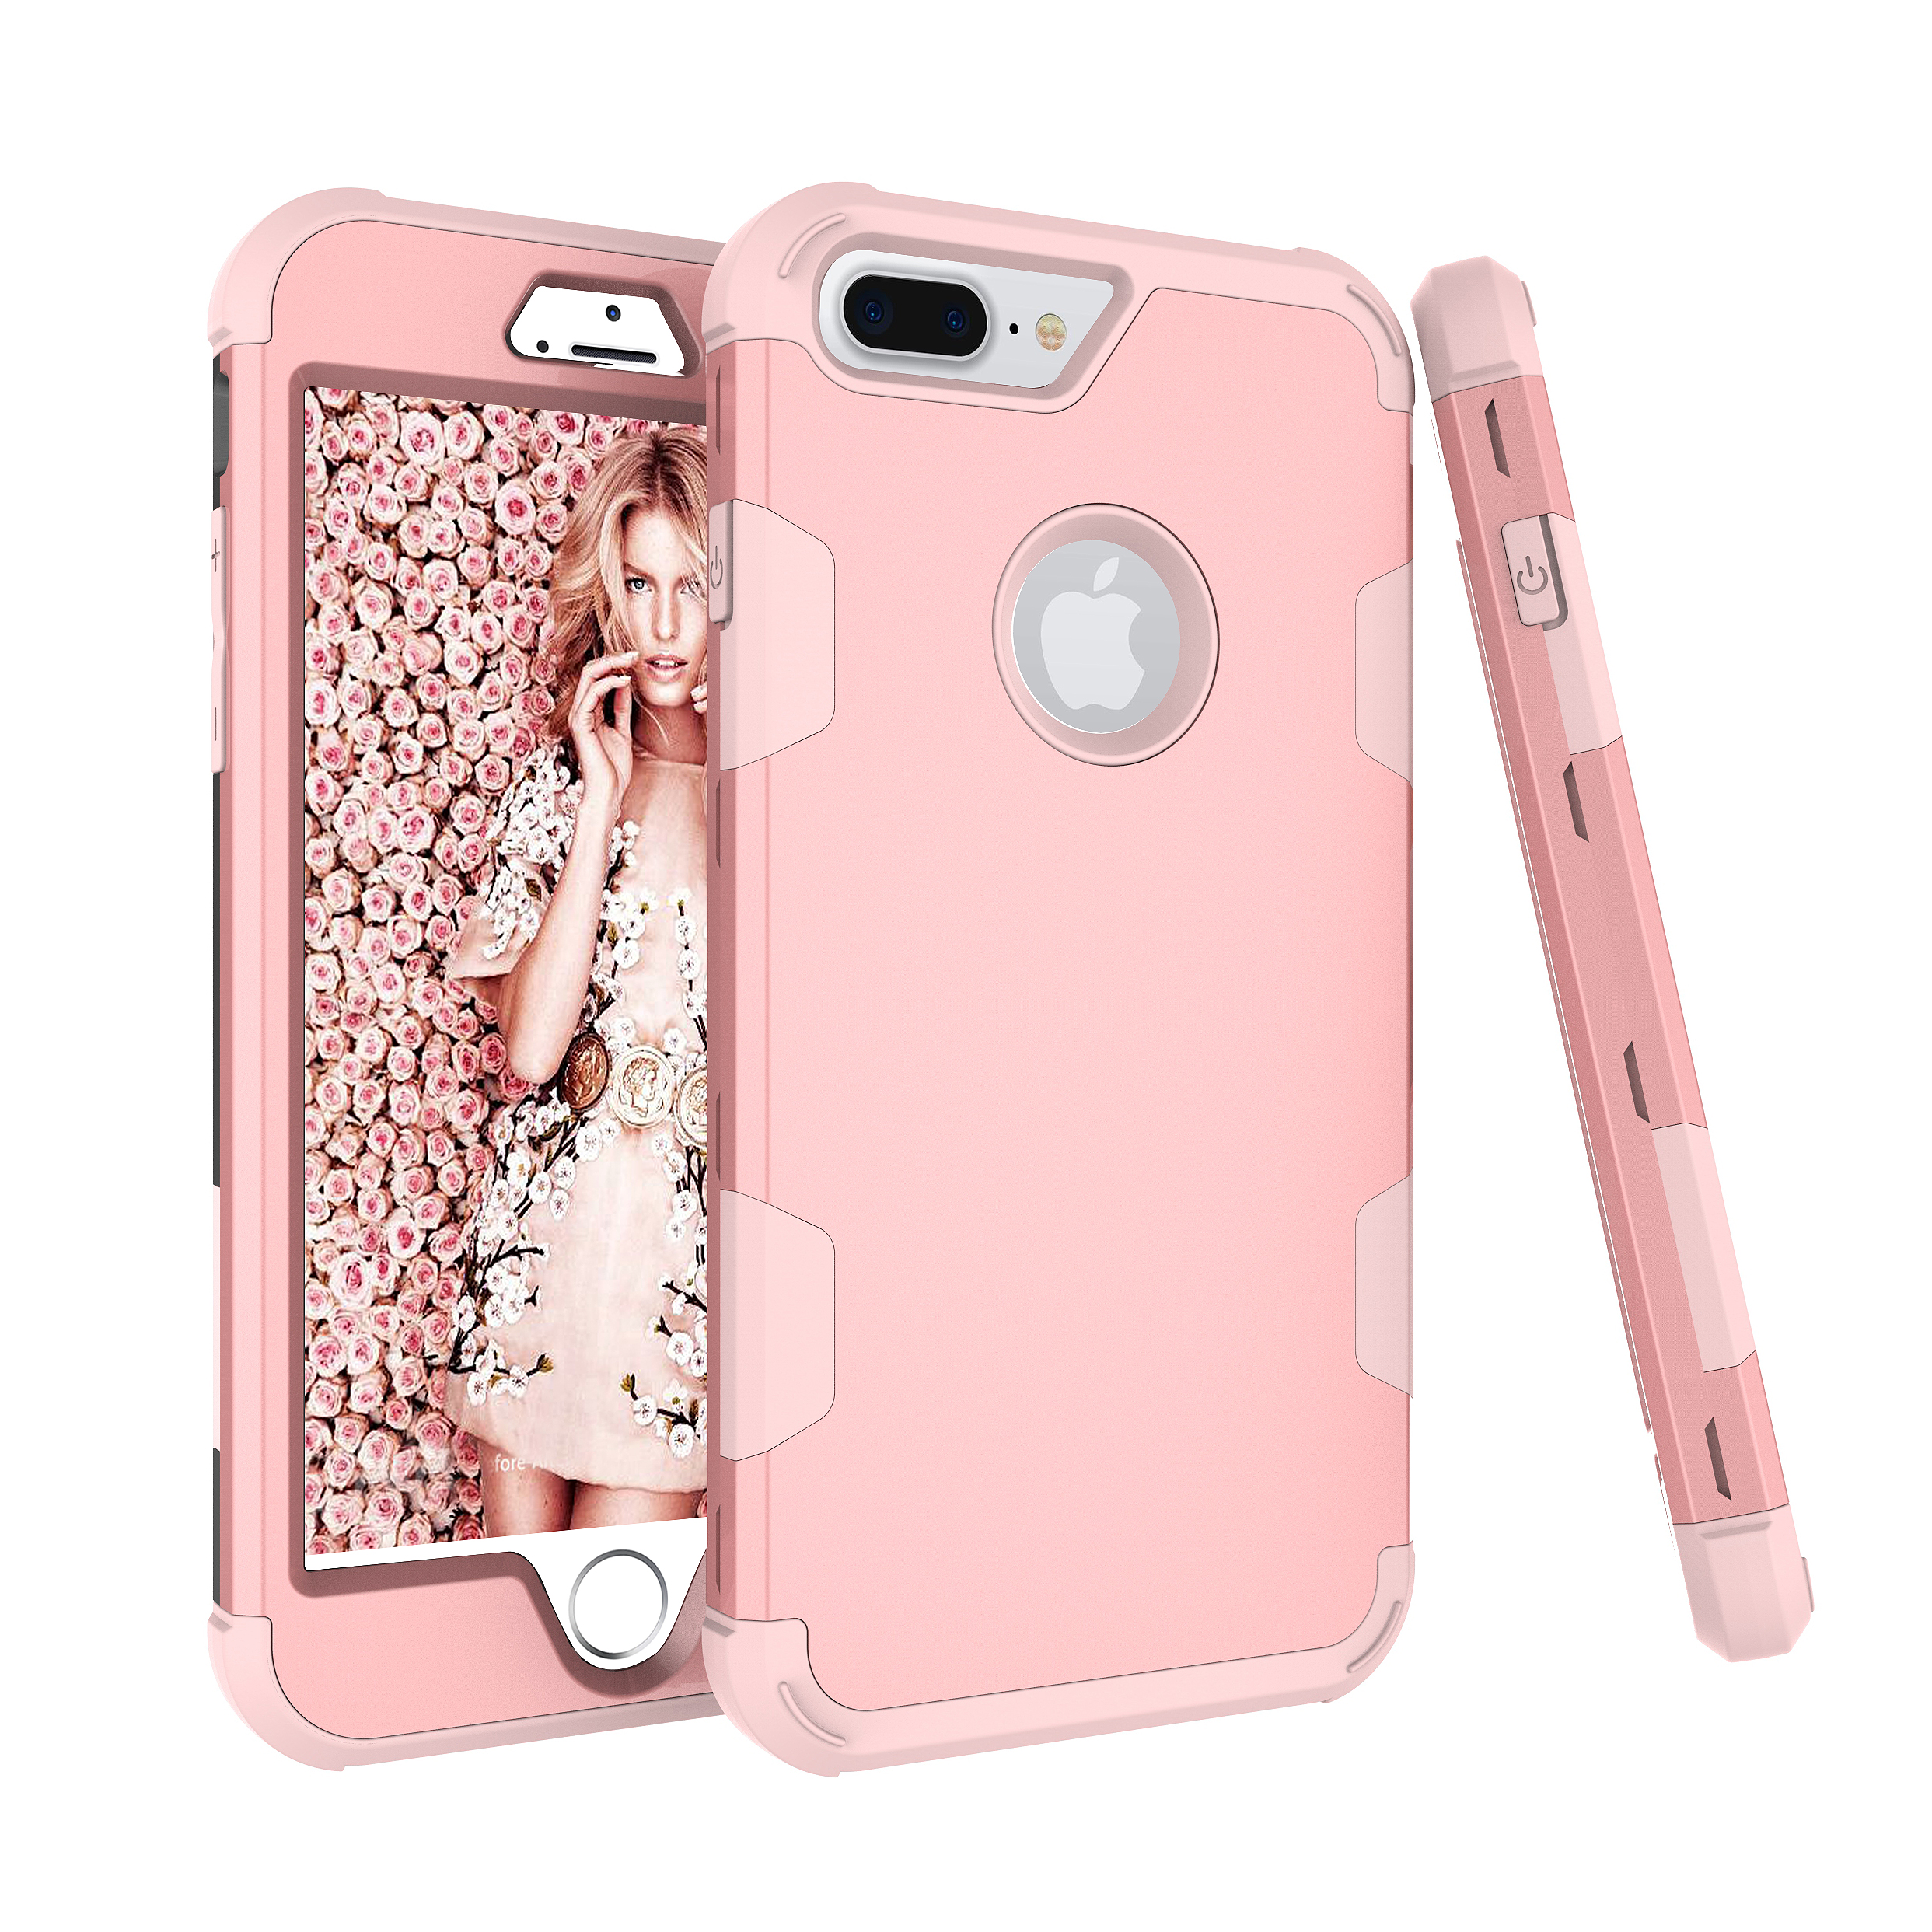 For iPhone 7 plus PC+ Silicone 2 in 1 Hit Color Tri-proof Shockproof Dustproof Anti-fall Protective Cover Back Case Rose gold